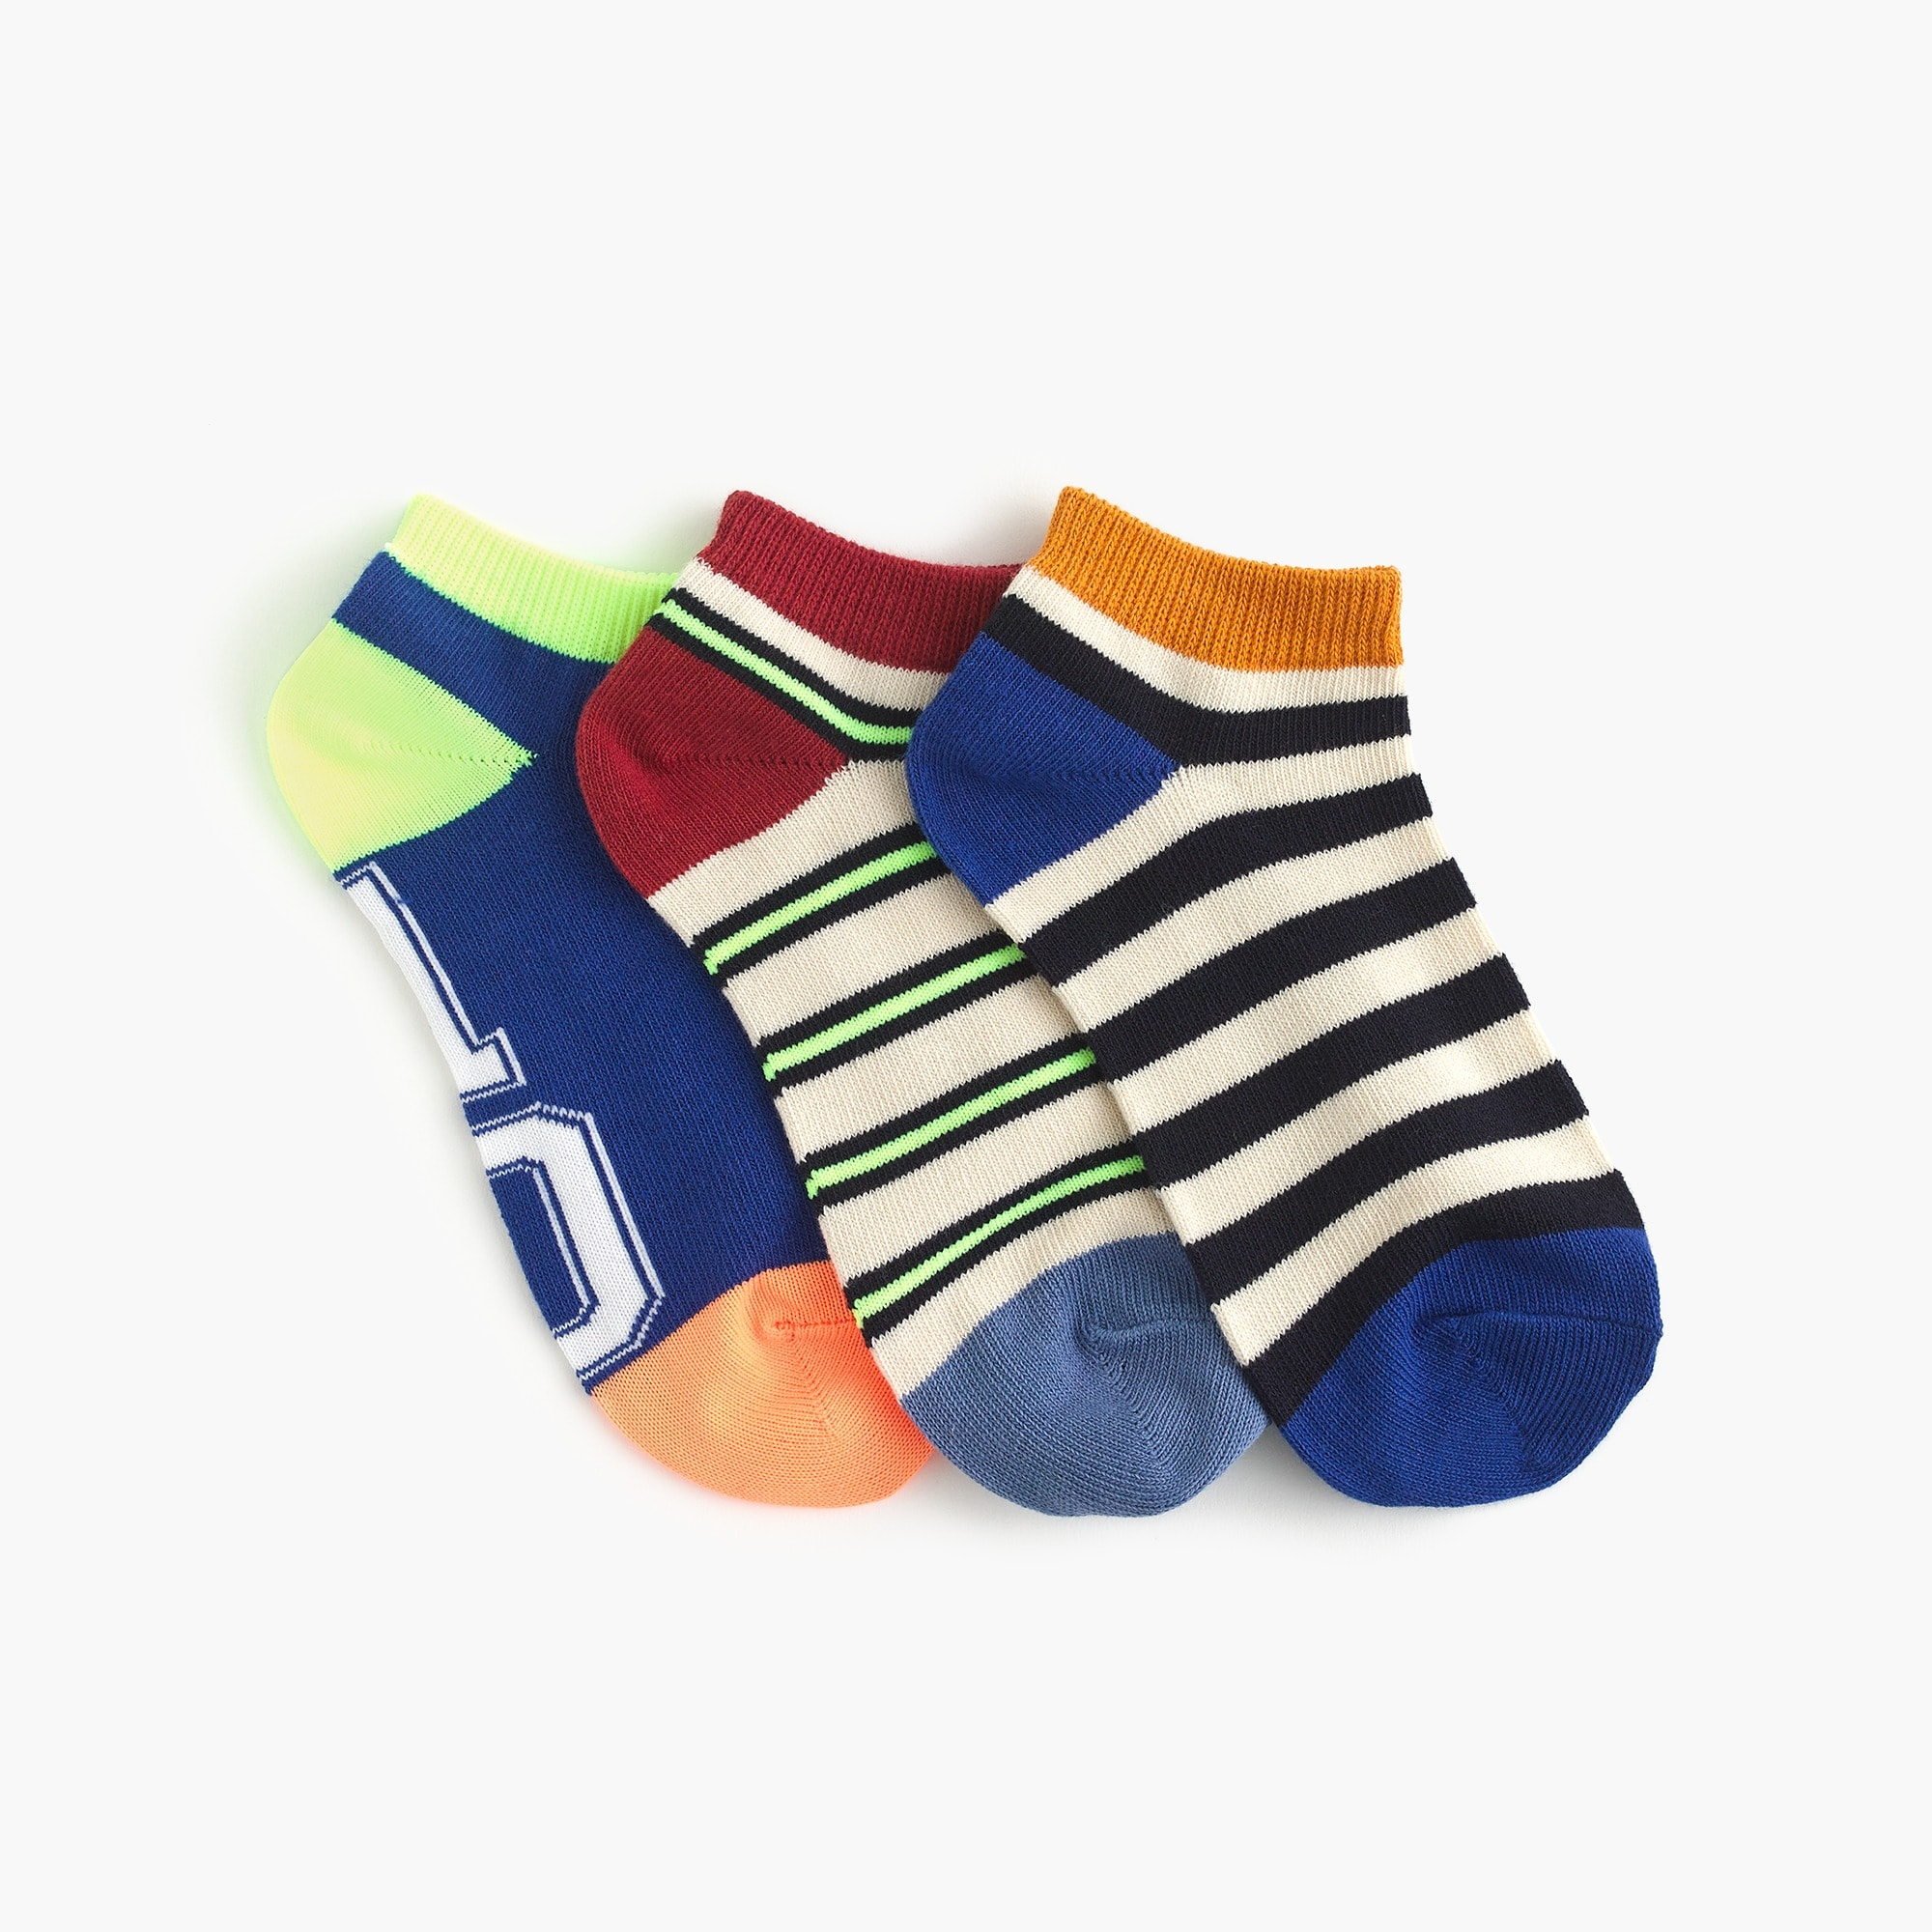 boys' ankle socks three-pack - boys' accessories